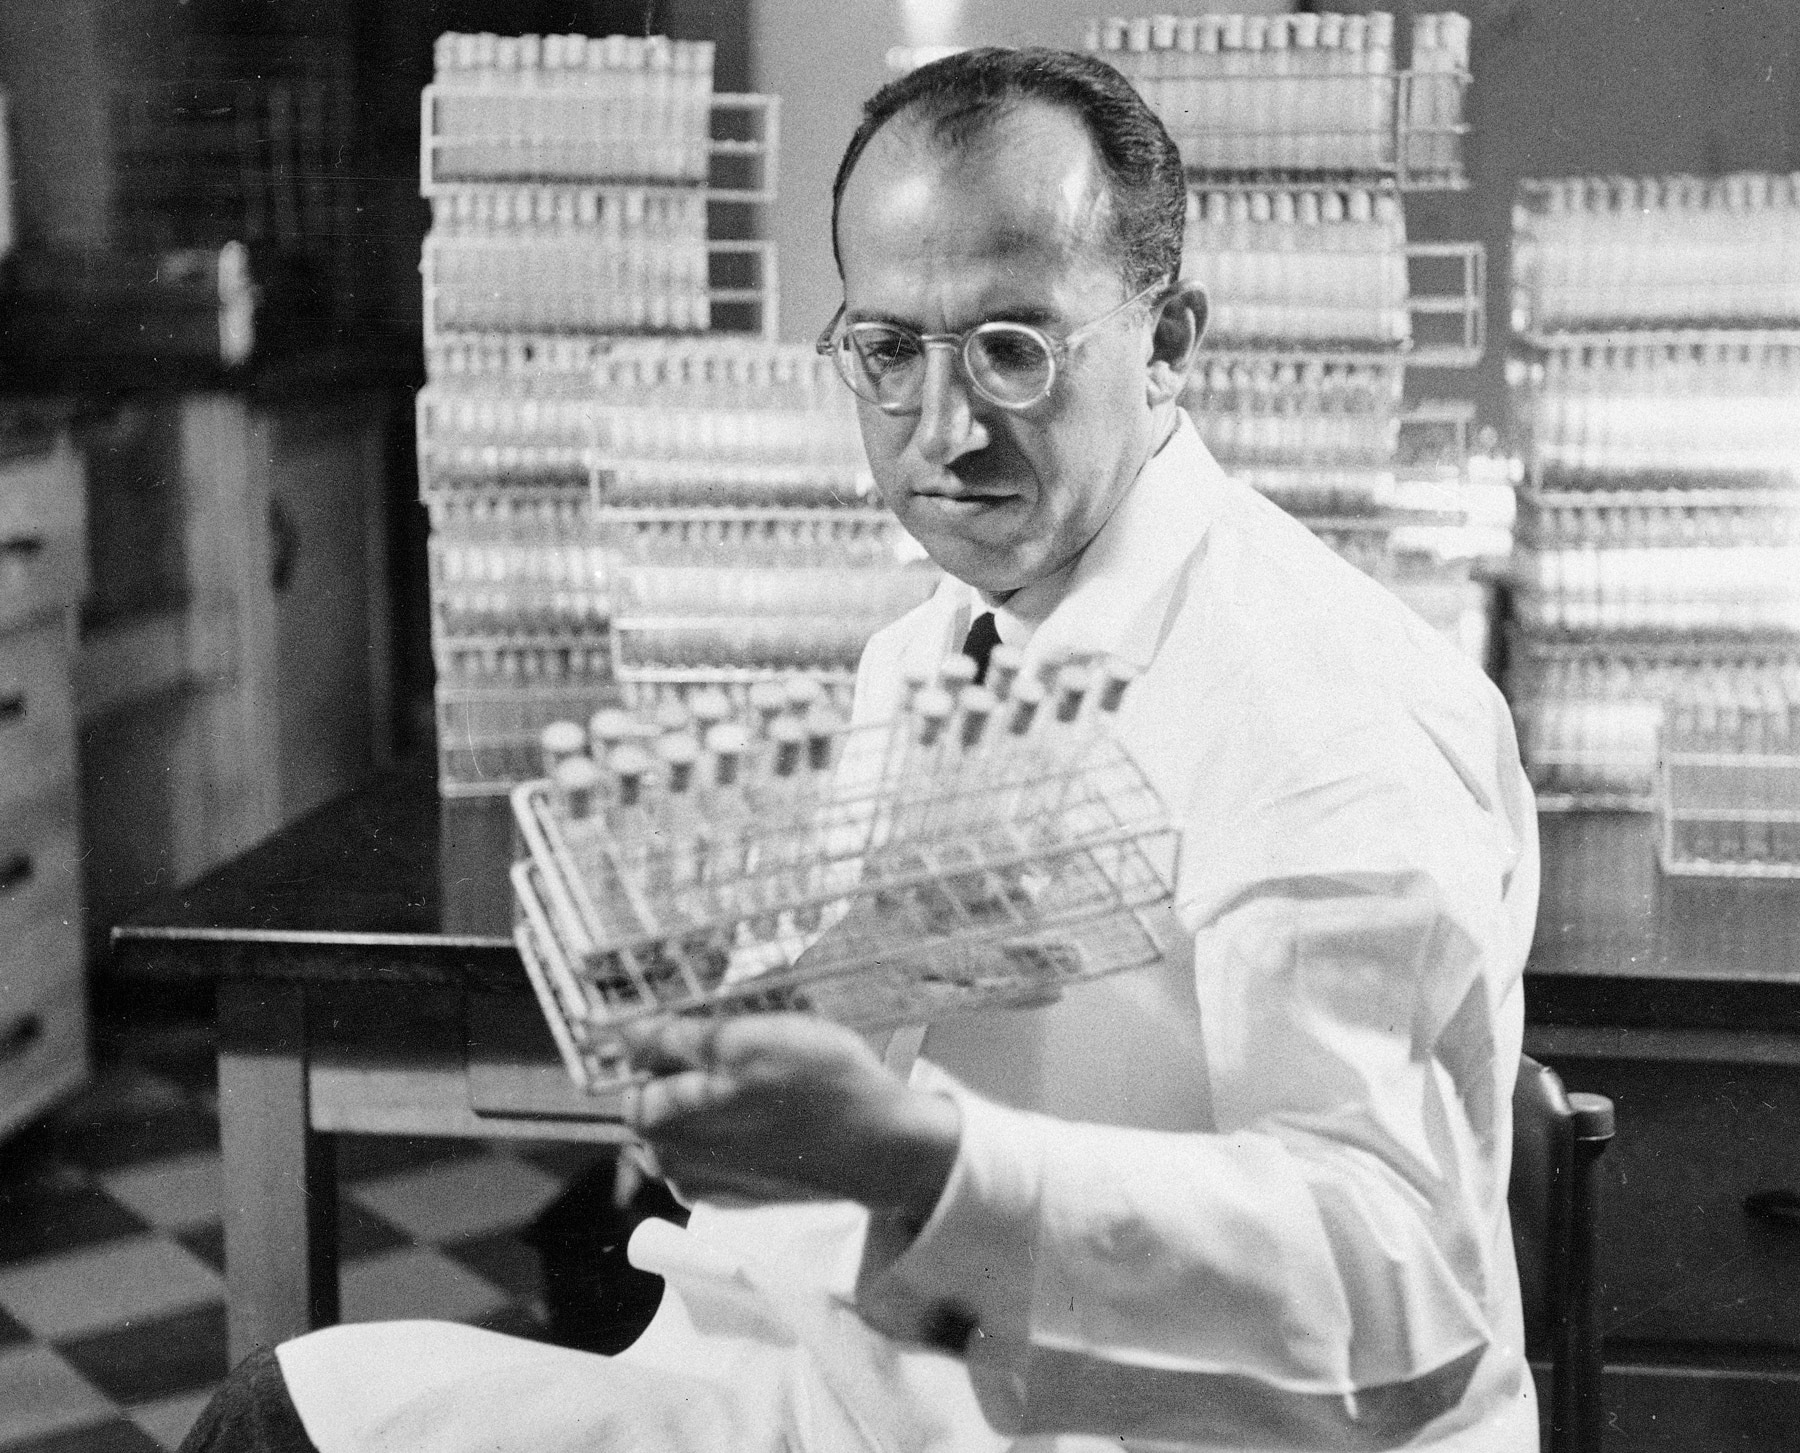 Jonas Salk viewing vials (© AP Images)